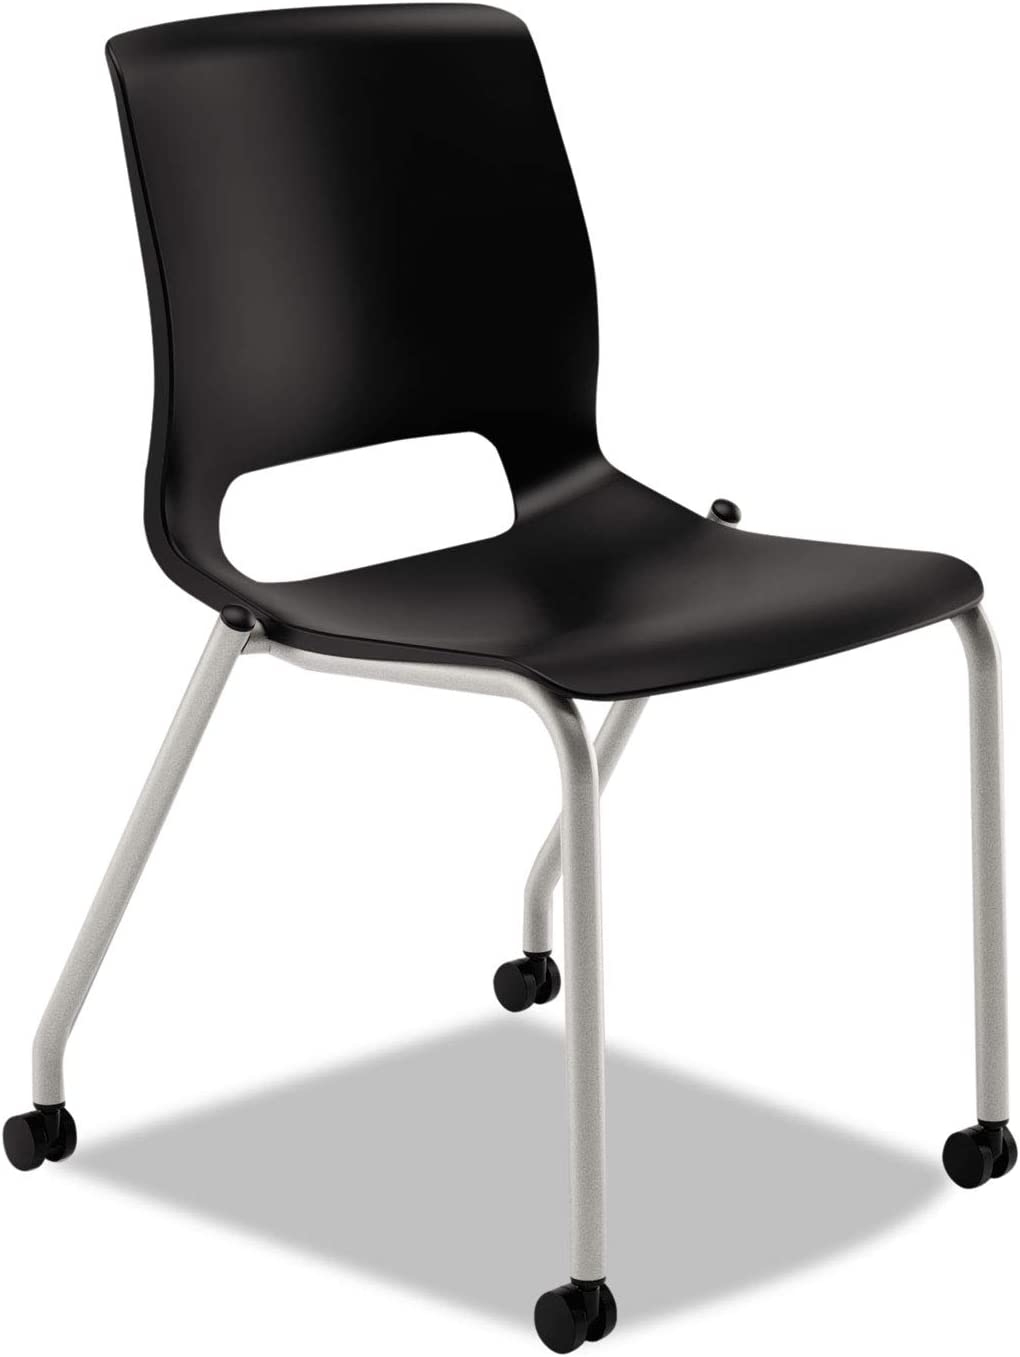 Ranking TOP2 HONMG201CU10 - HON Motivate 2-Pack Stacking Ranking TOP4 Chairs